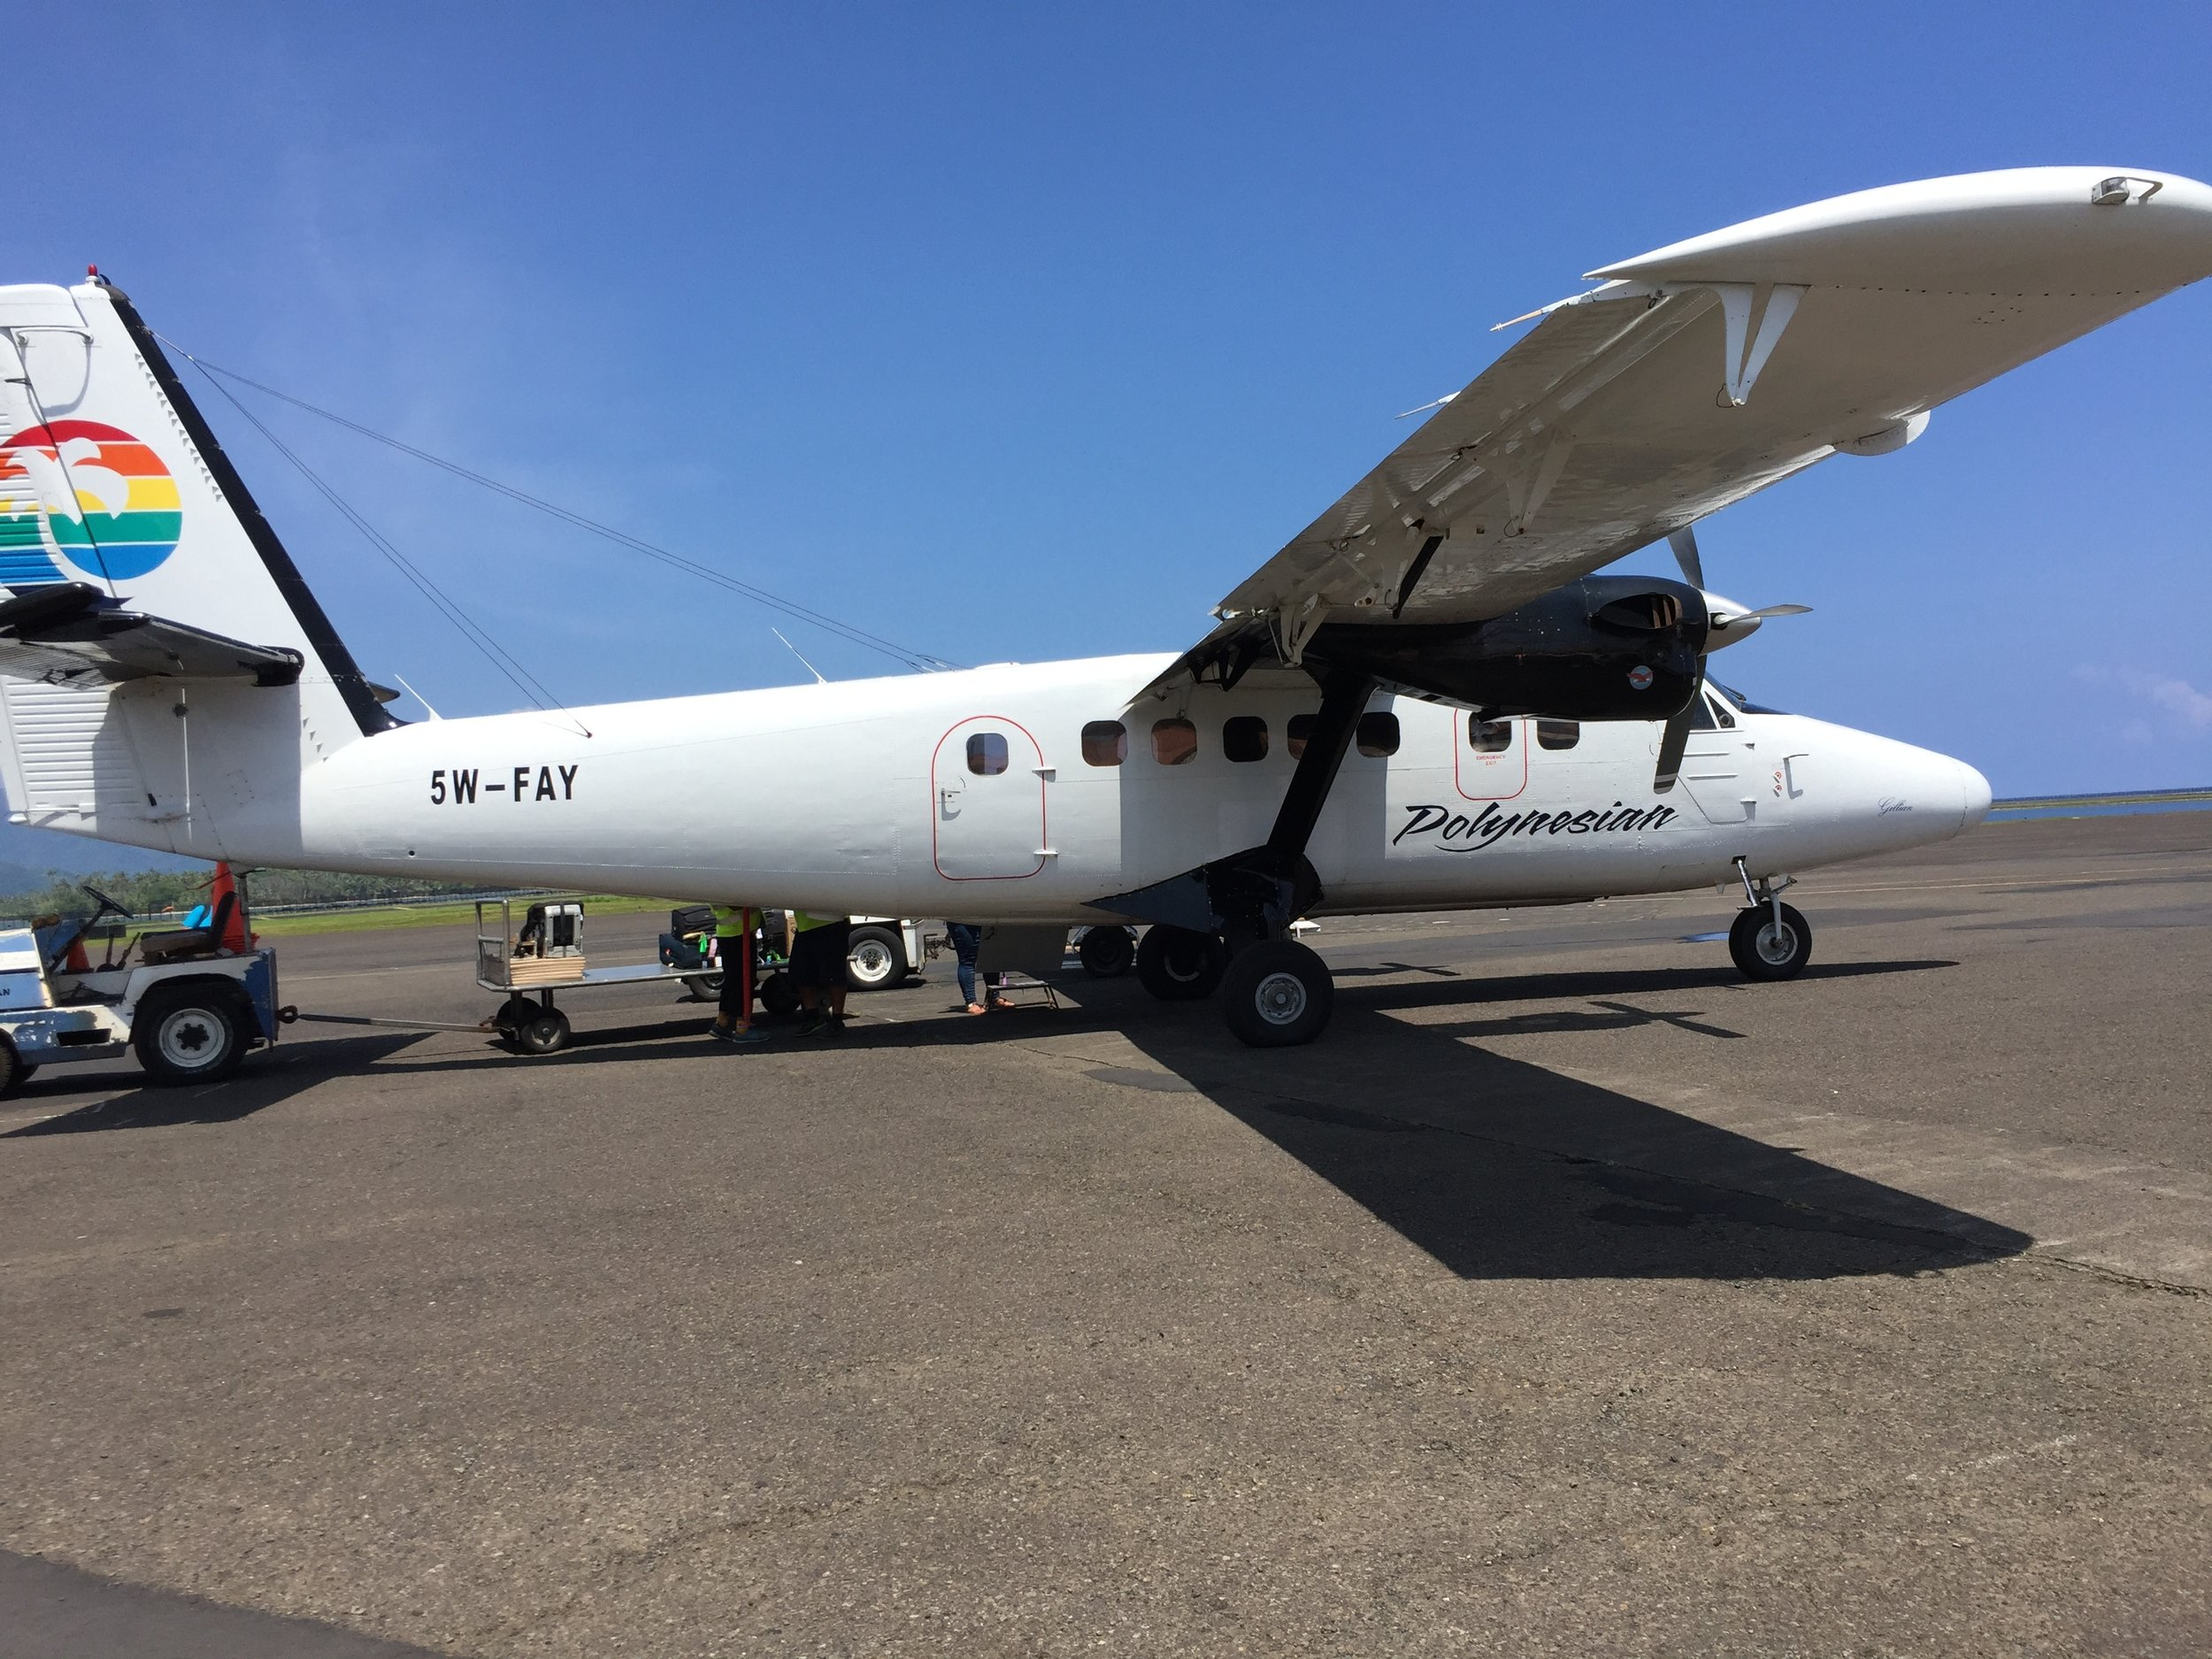 Our wonderful 17-seater flight from Samoa to Pago Pago